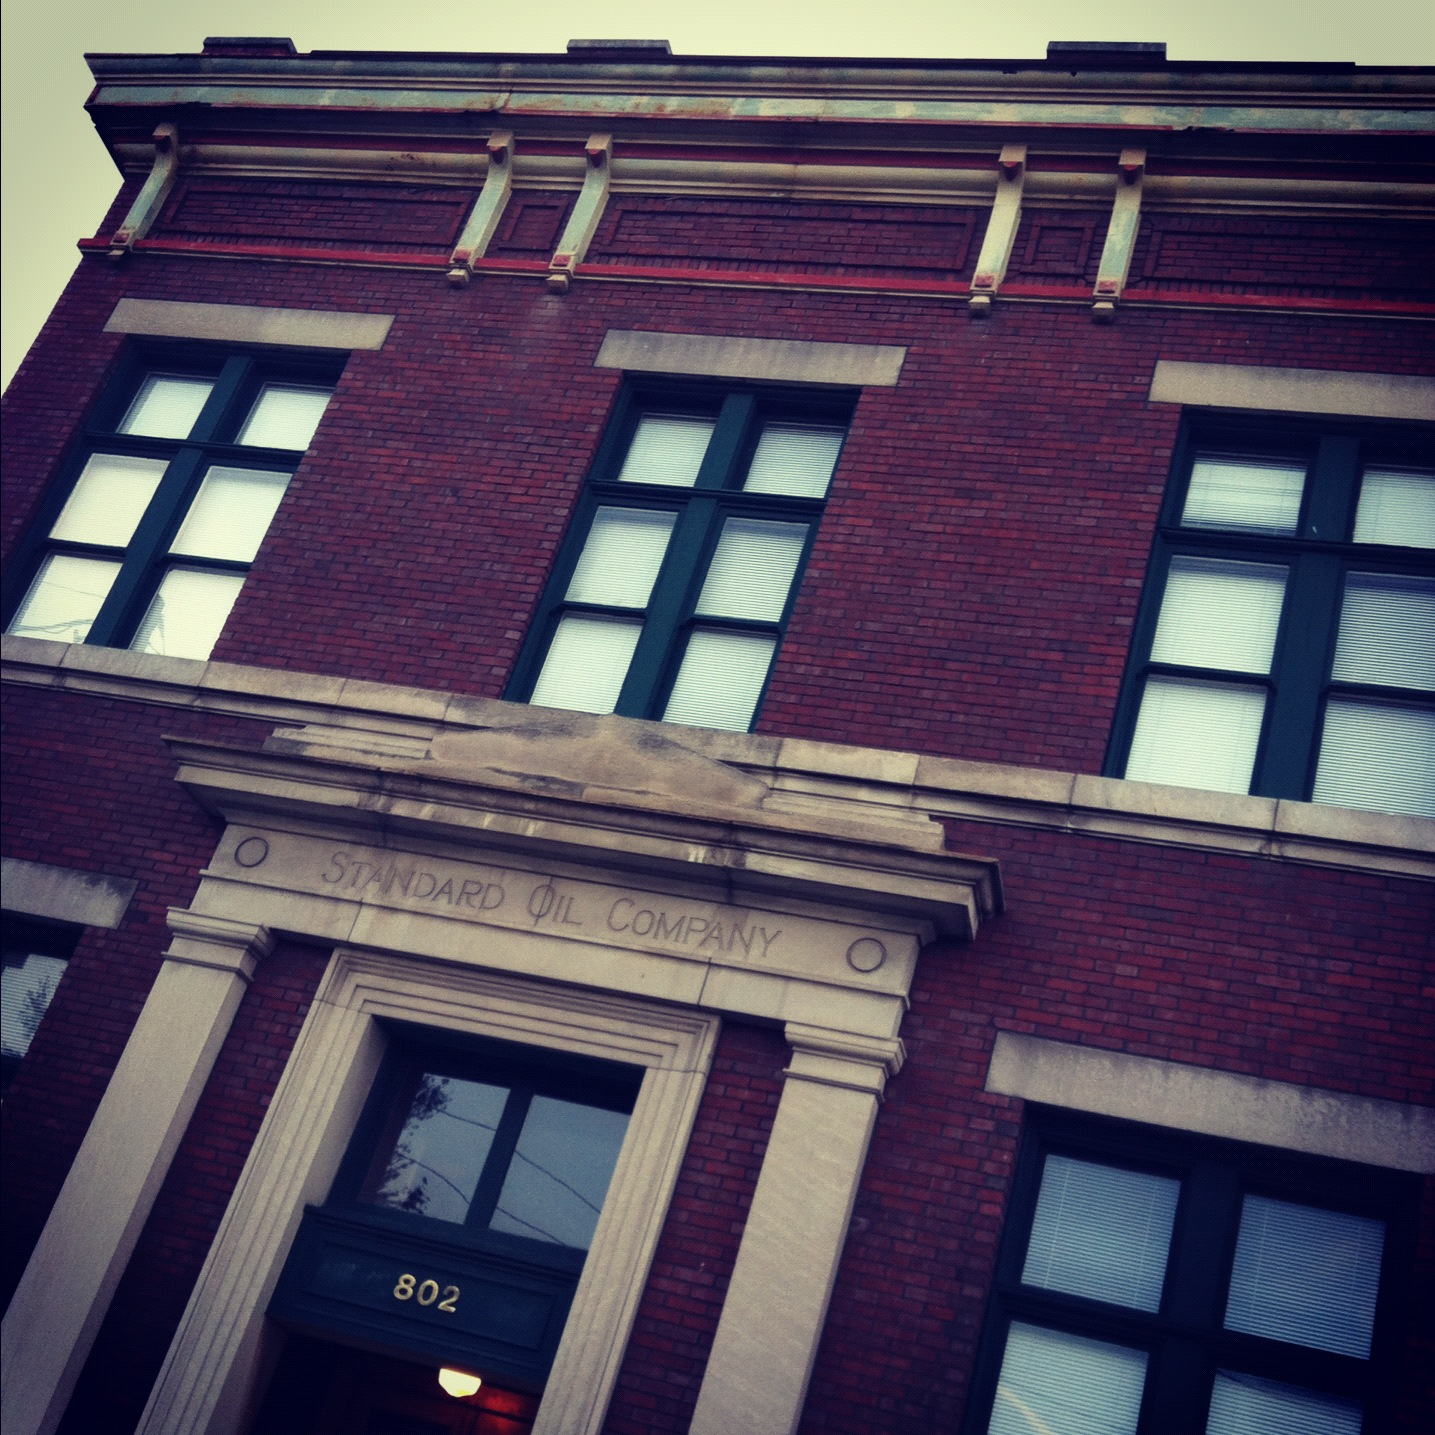 Friday Favorite: Standard Oil Company, Indianapolis